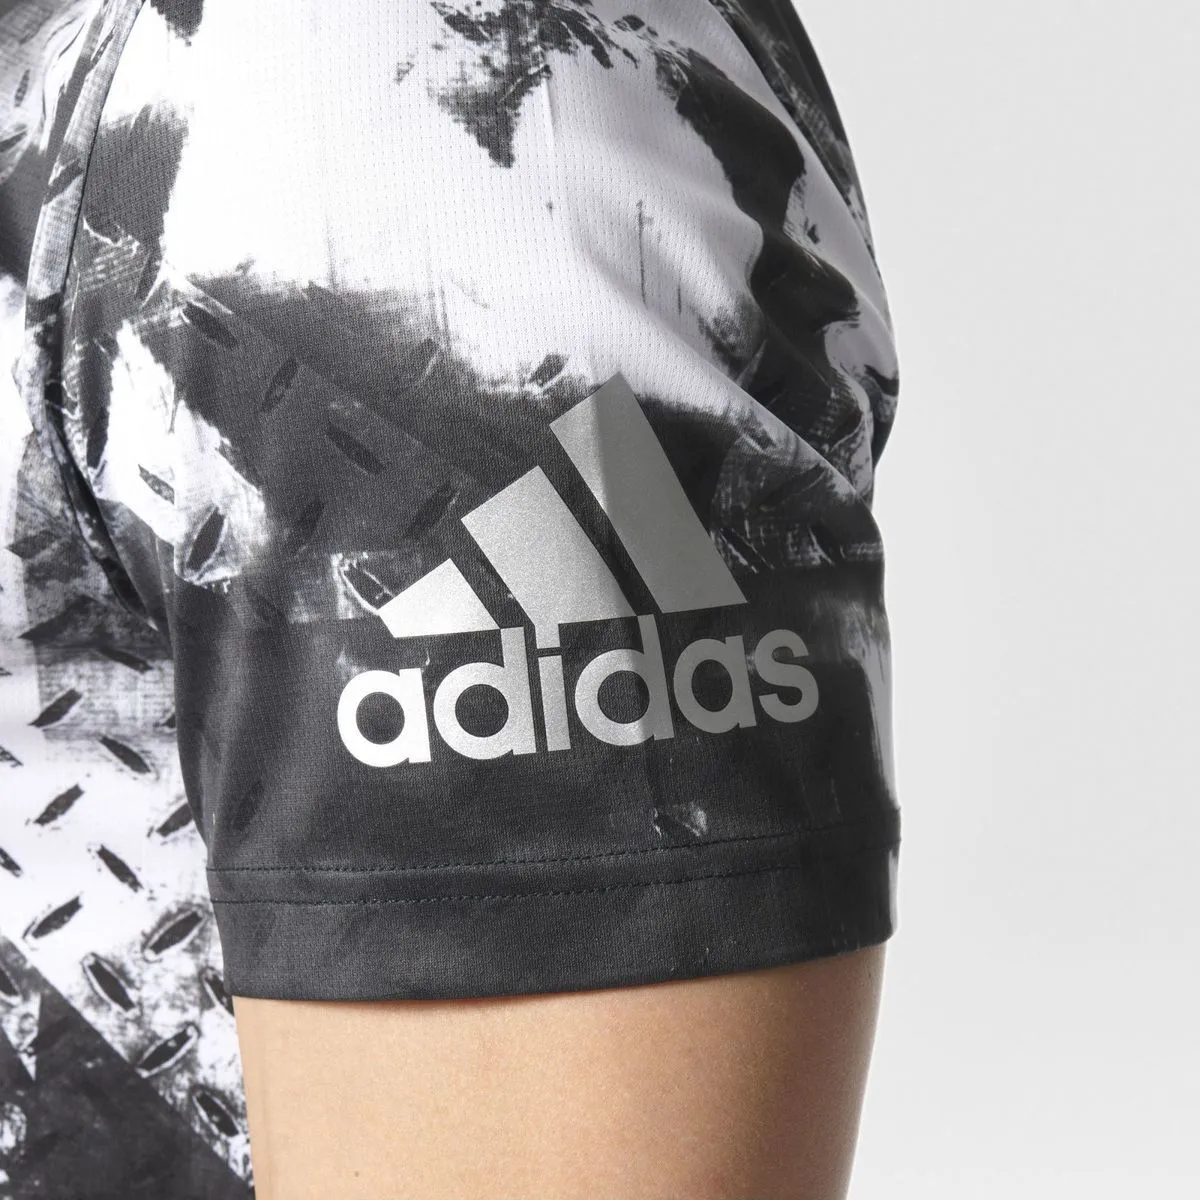 Camiseta adidas Climachill Running Tênis Fitness Crossfit